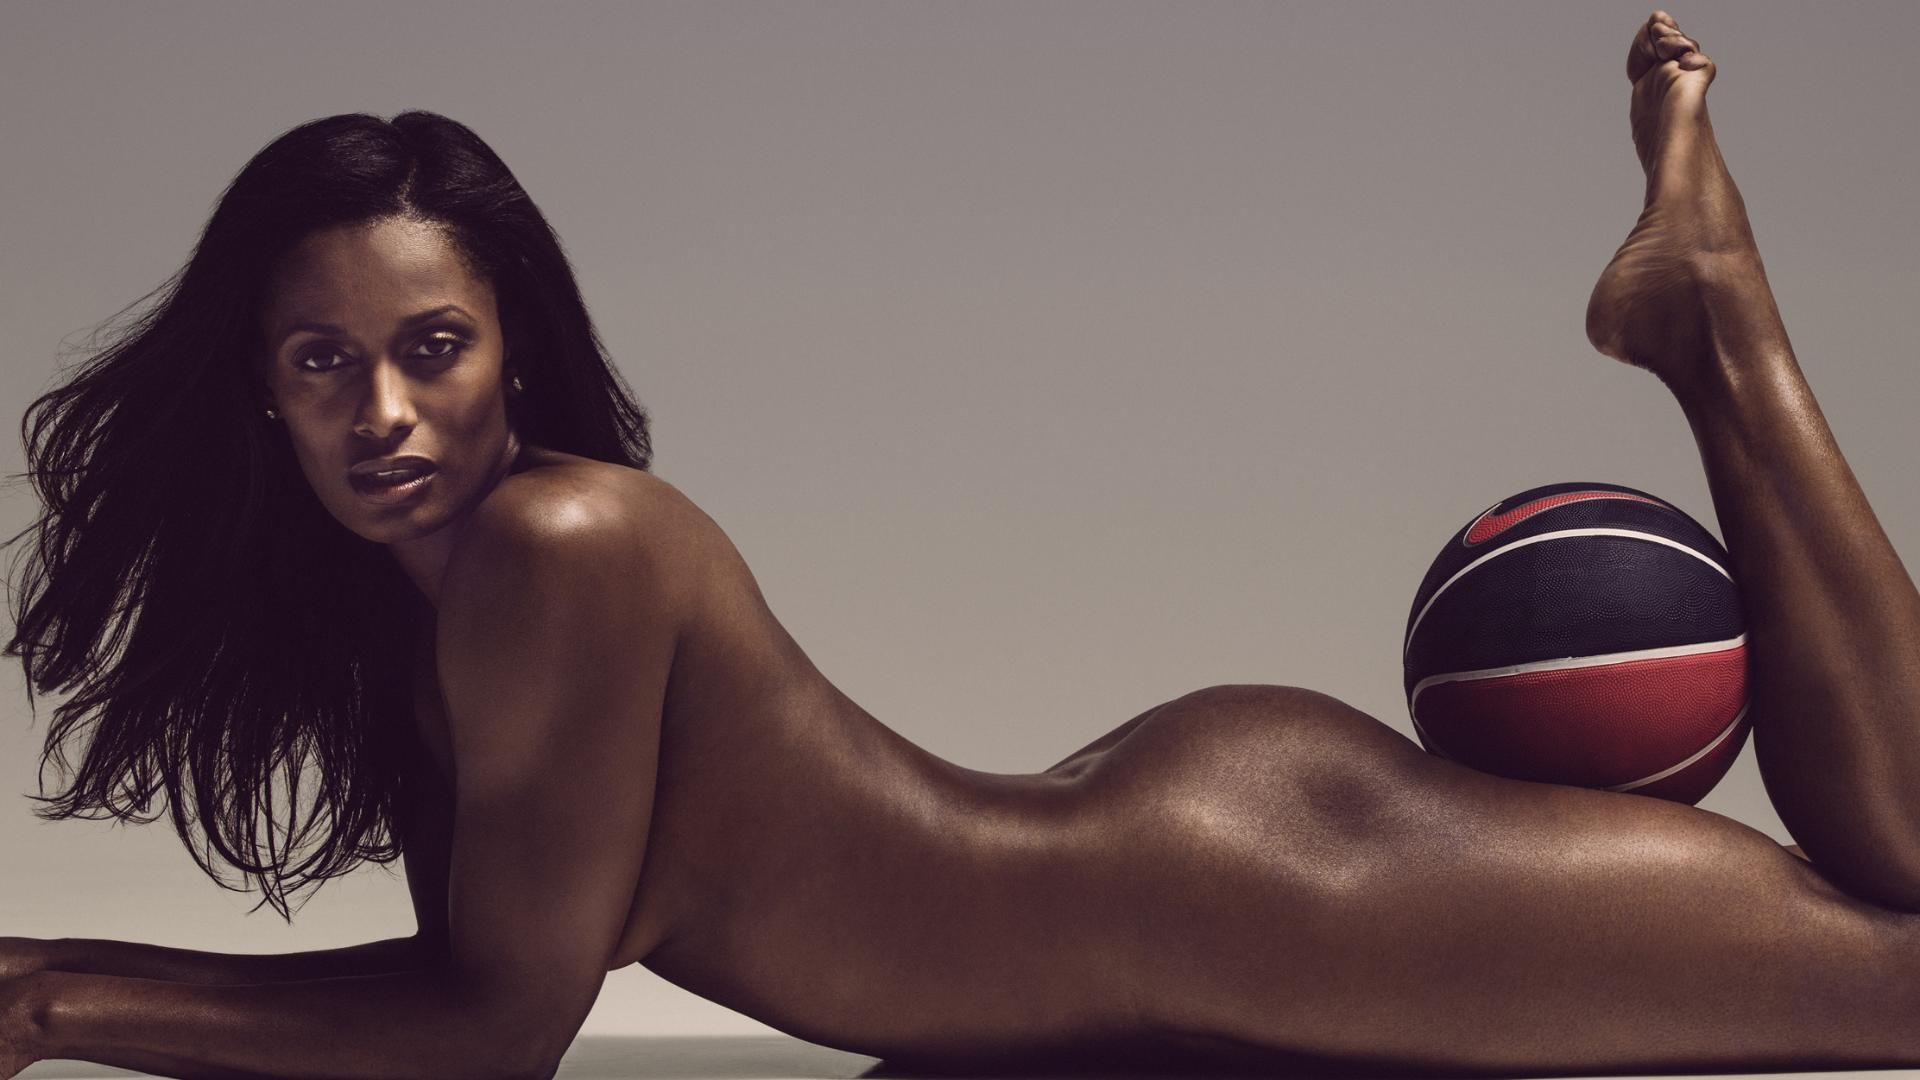 espn the mag body issue 2013: swin cash - espn video